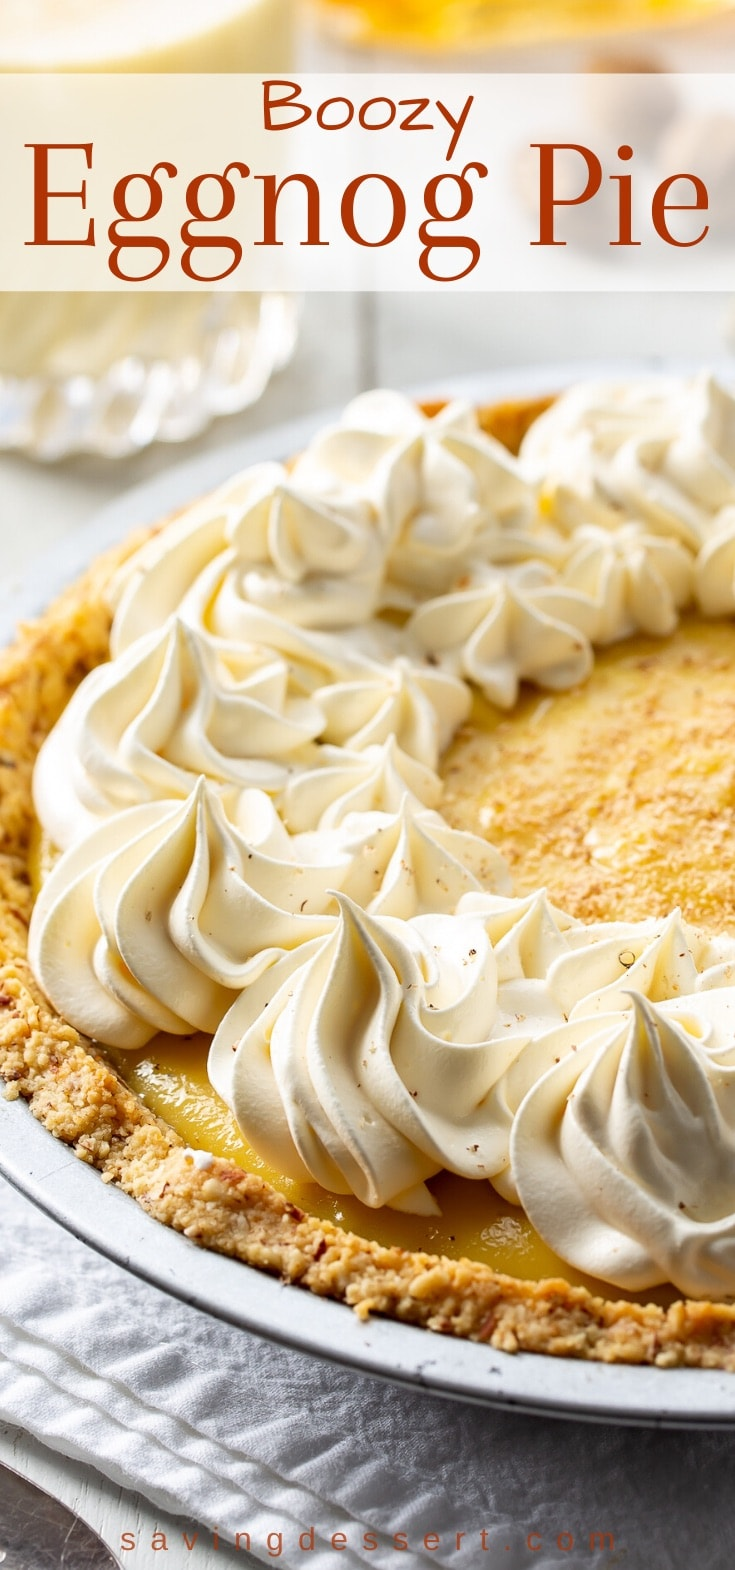 A creamy, boozy eggnog pie topped with swirls of whipped cream and fresh grated nutmeg